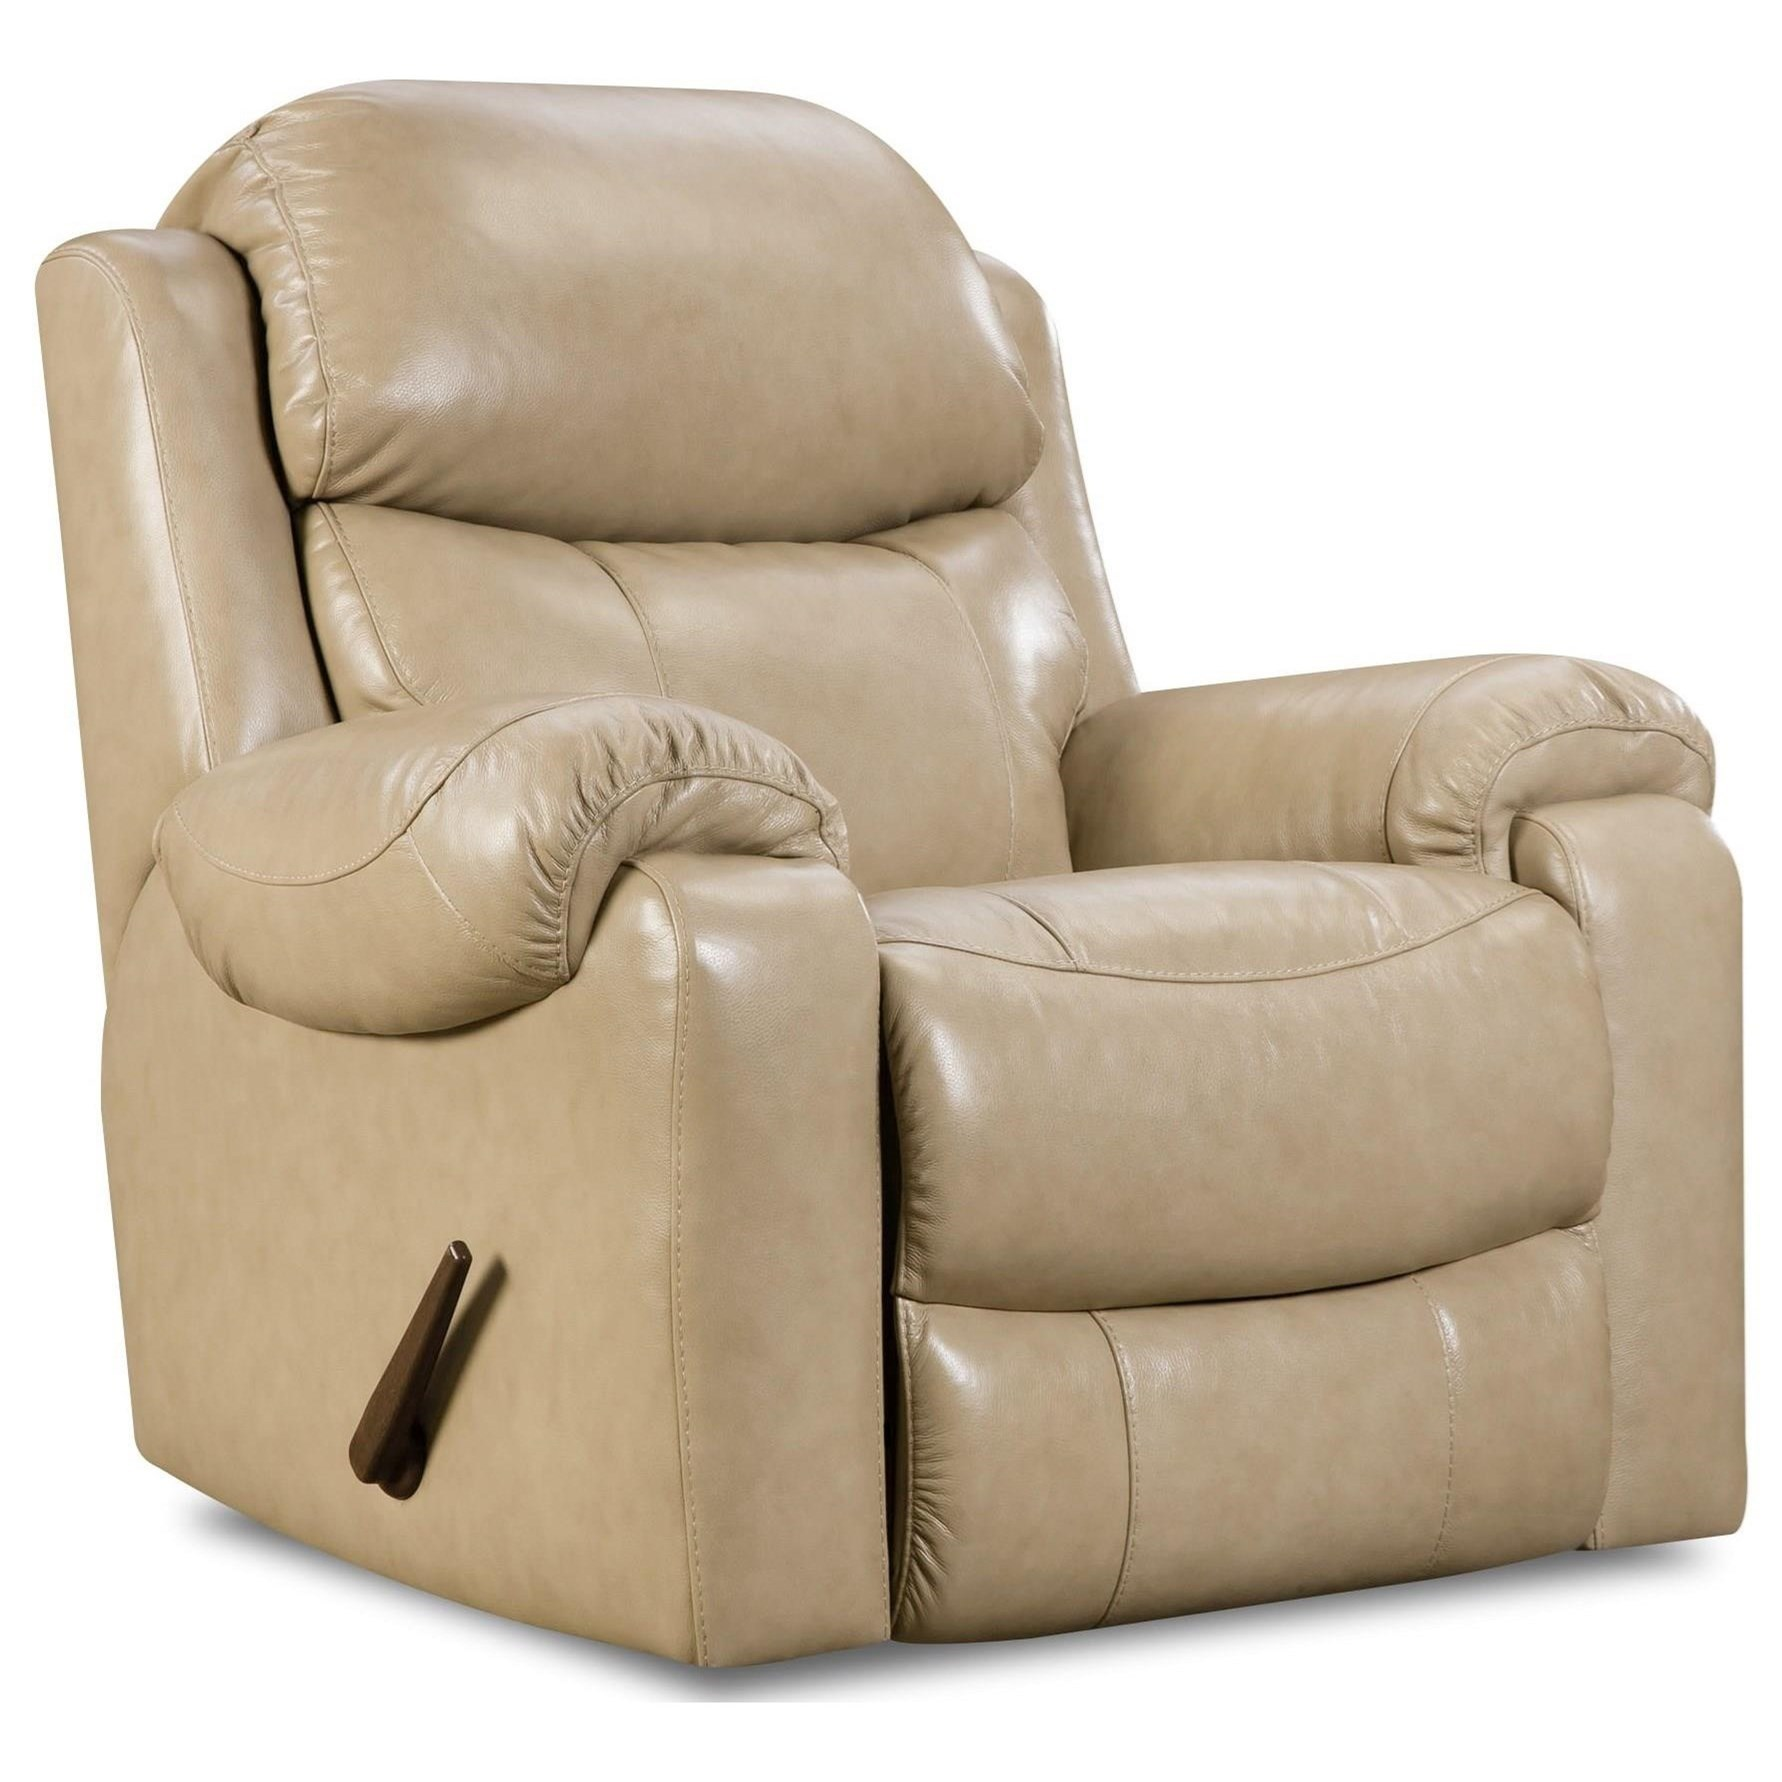 HomeStretch 135 Collection Rocker Recliner - Item Number: 135-91-10